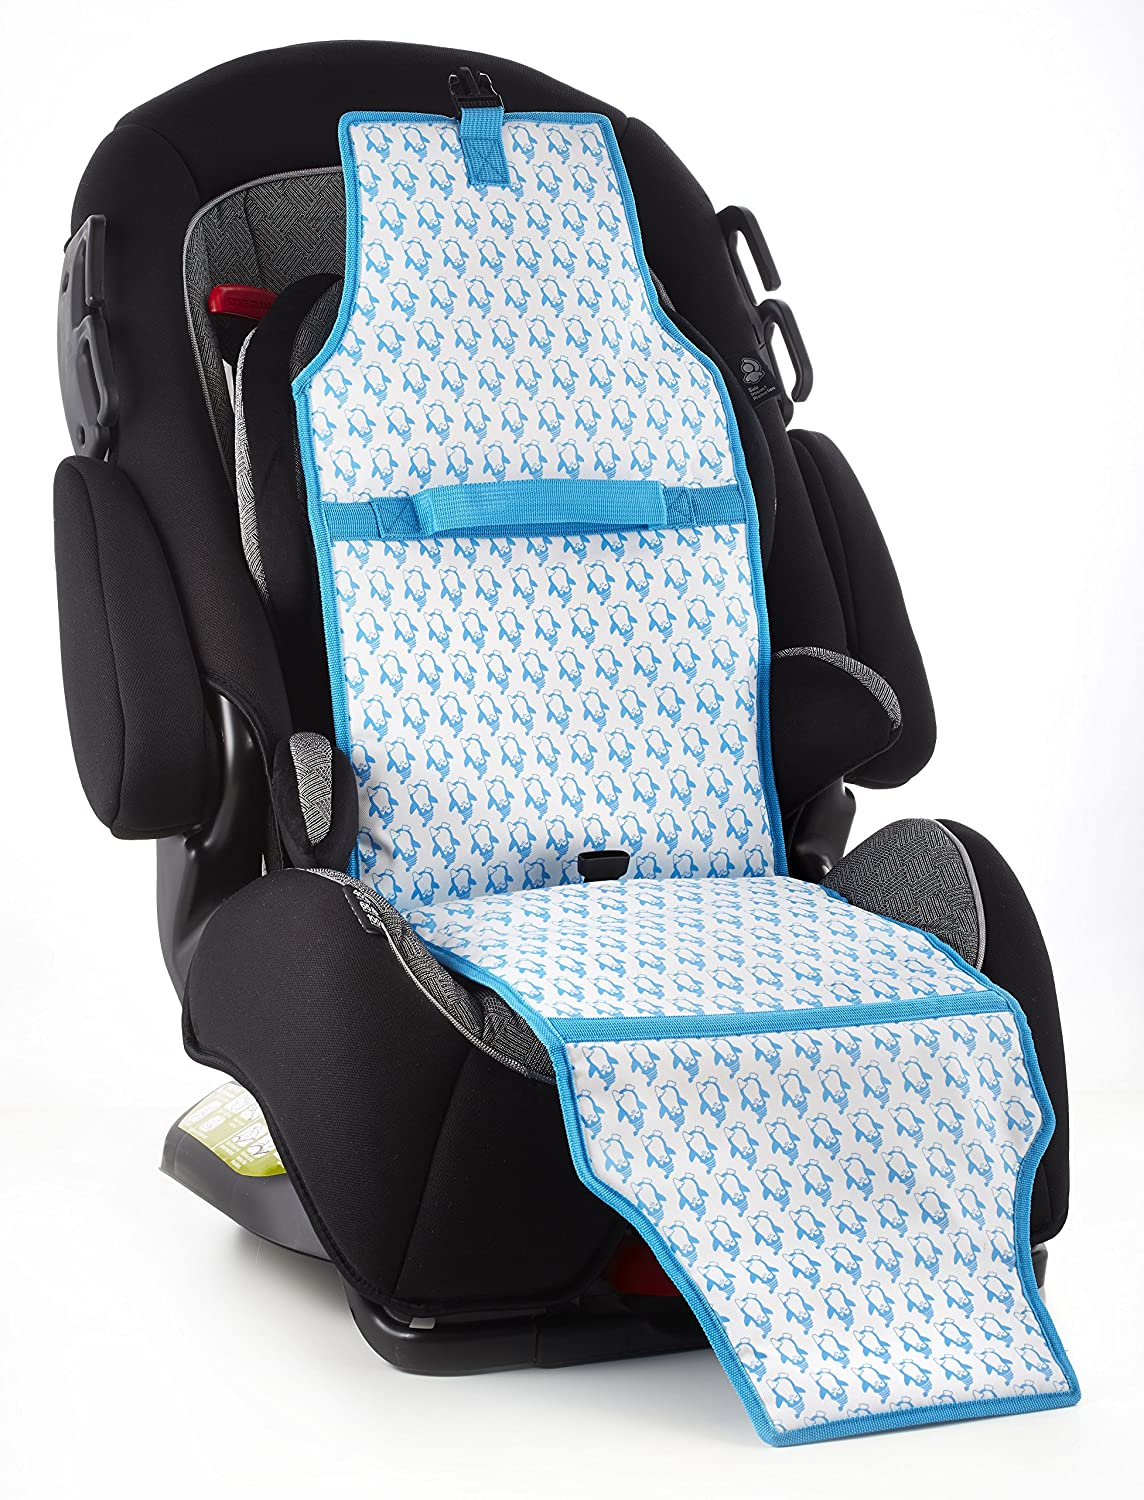 penguin car seat covers velcromag. Black Bedroom Furniture Sets. Home Design Ideas